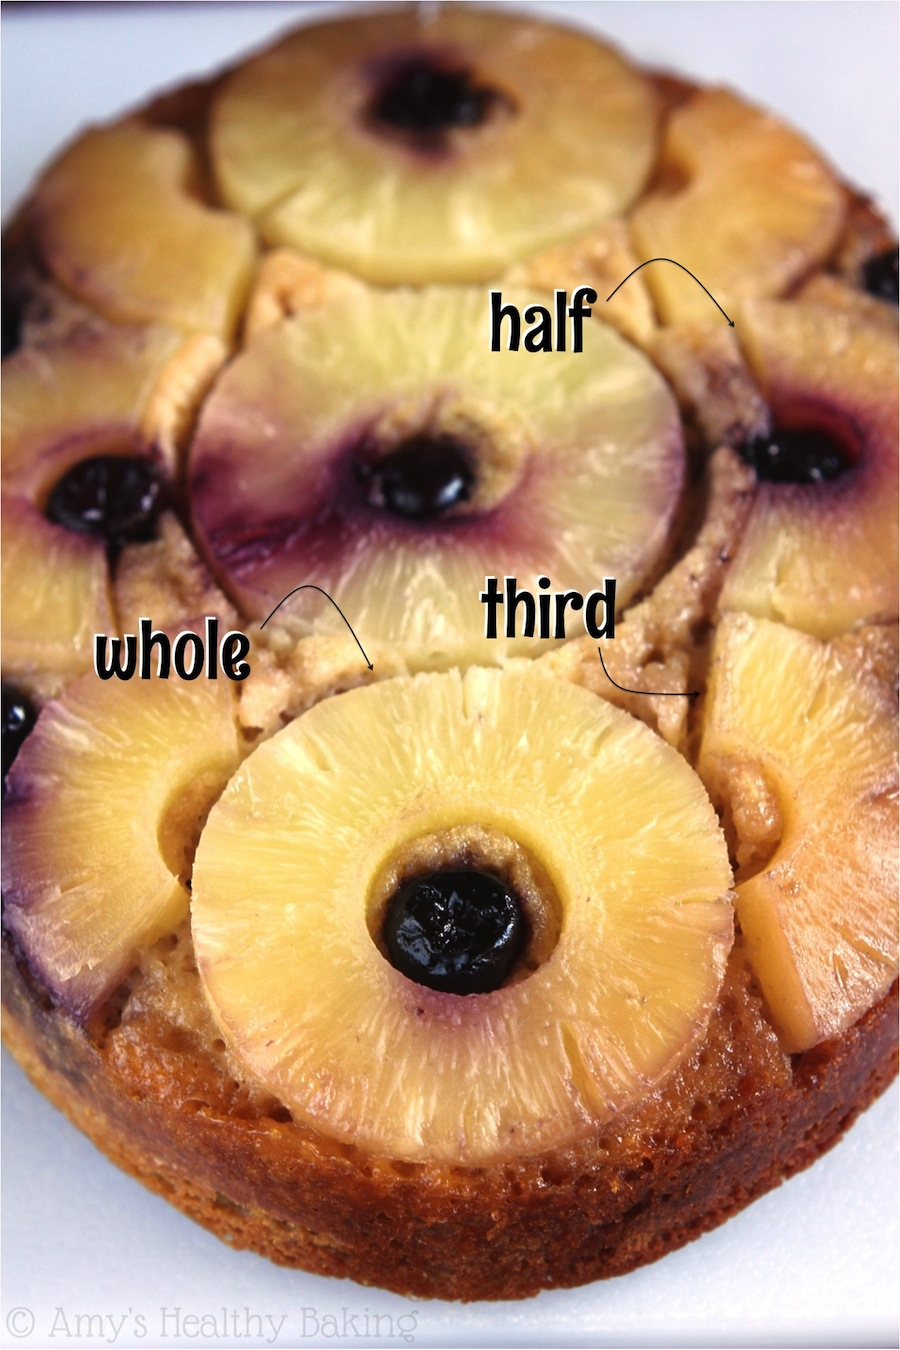 Slow Cooker Pineapple Upside Down Cake -- that buttery topping is the best! And you could eat 3 slices of this healthier version & consume fewer calories than a traditional piece!